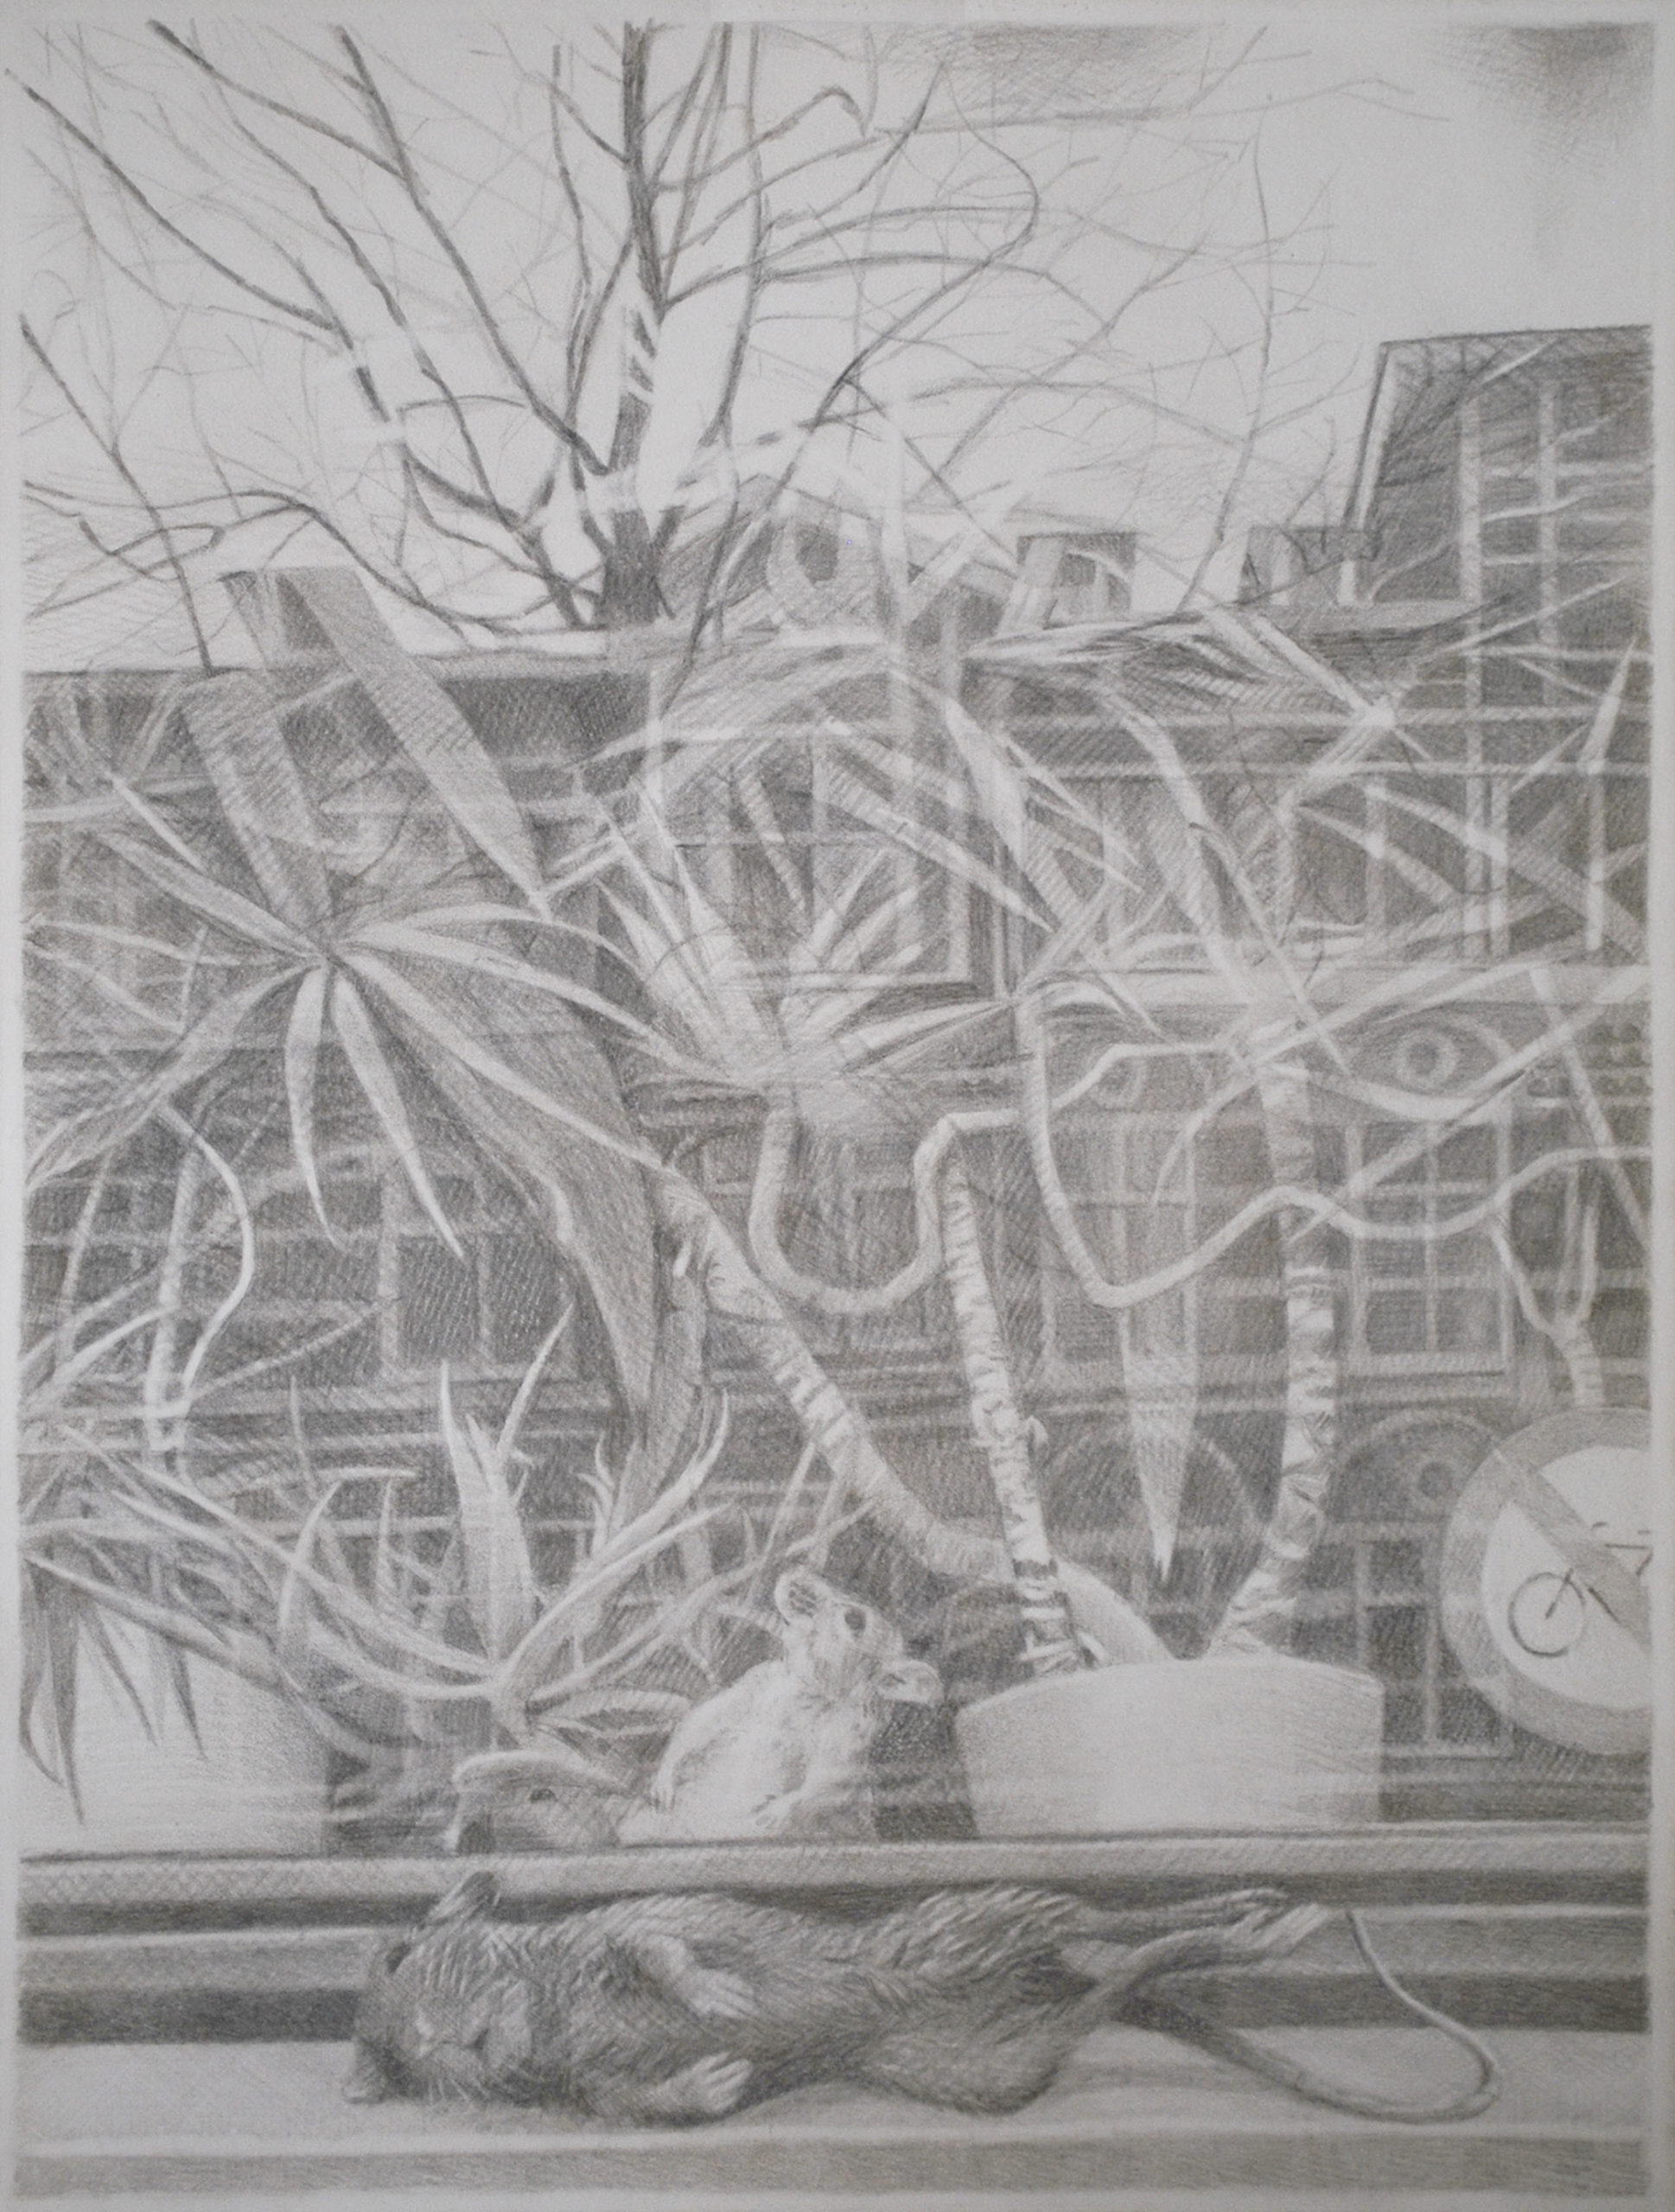 reflection on separation (2018) silverpoint on paper, 40x30cm